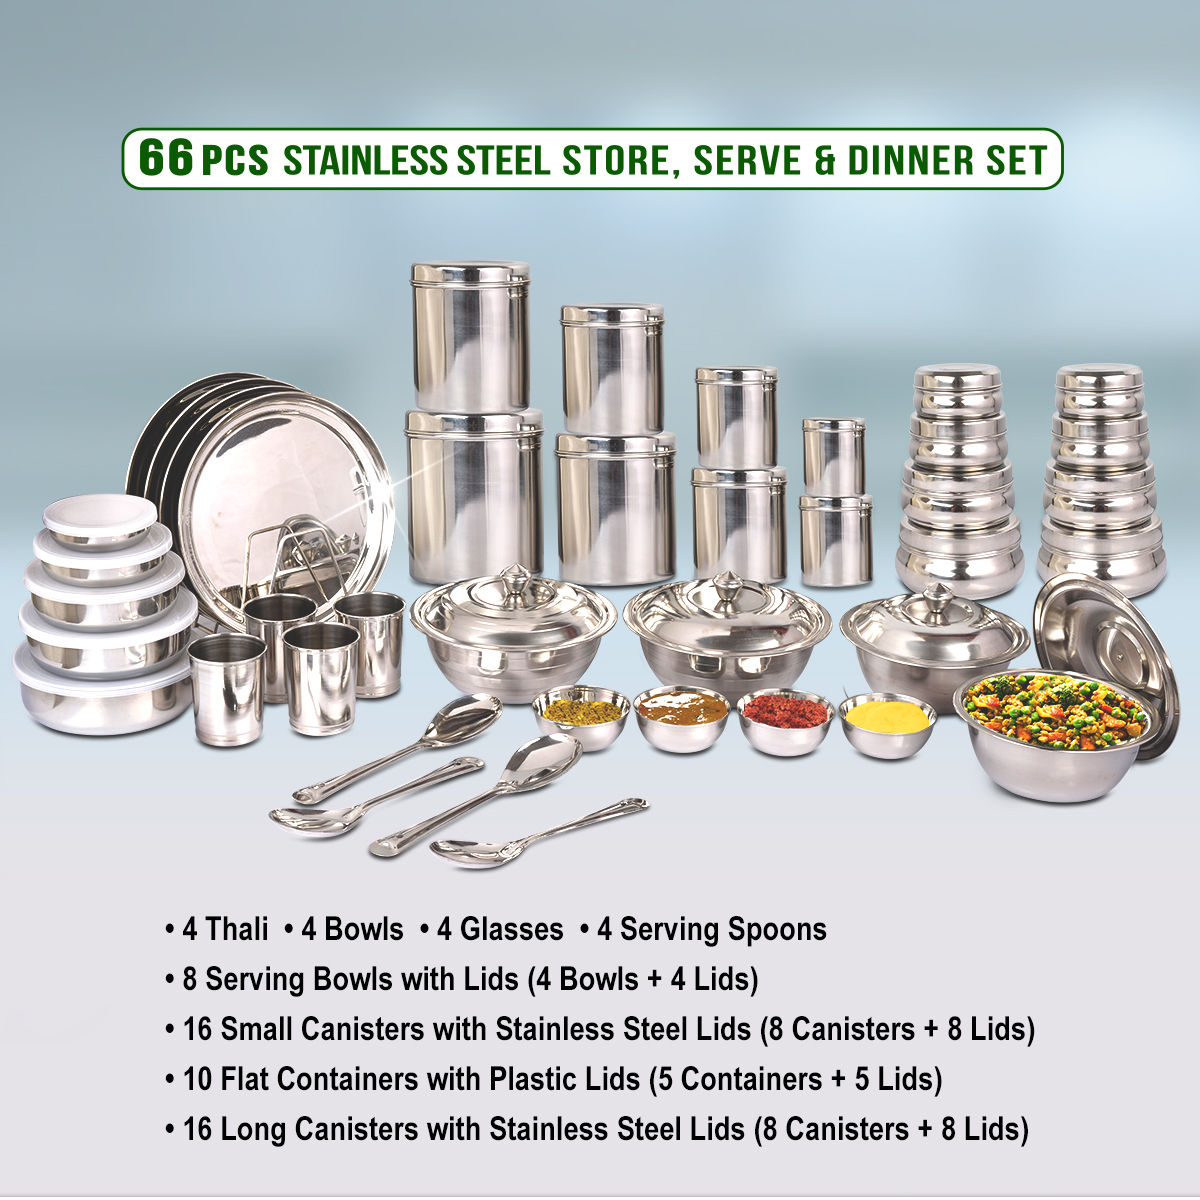 Buy 66 Pcs Store Serve Dinner Set Online At Best Price In India